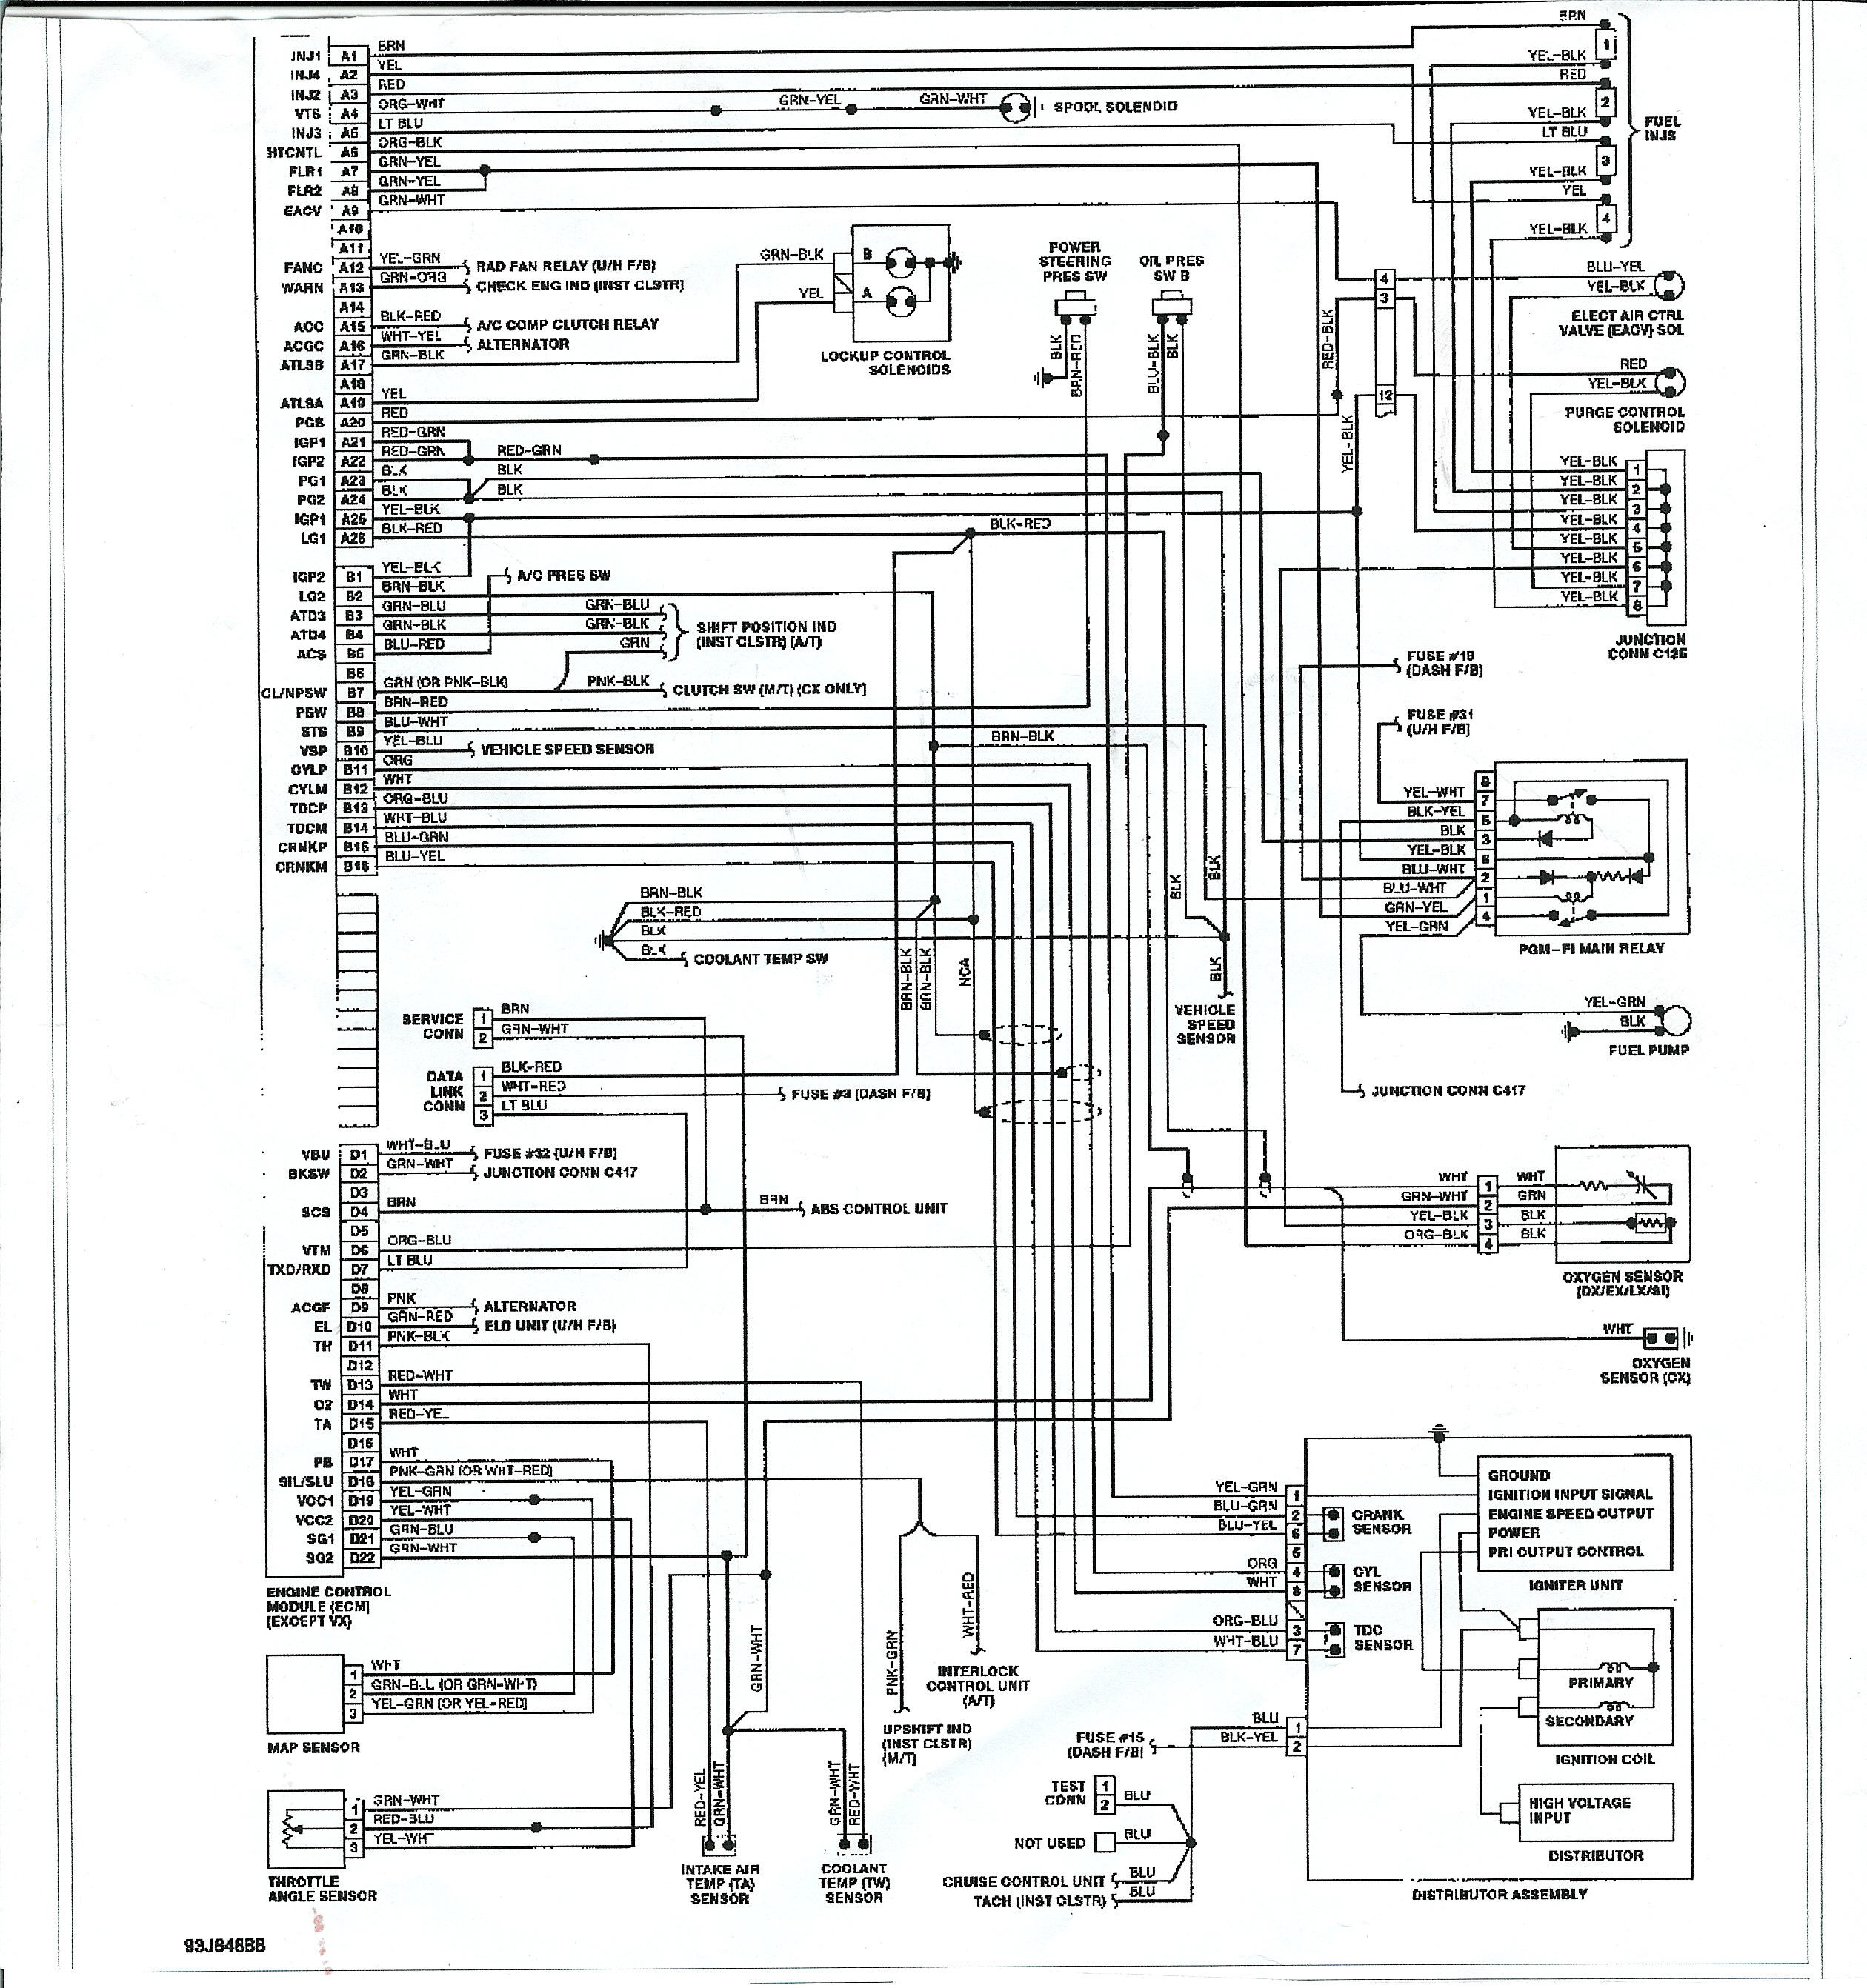 Honda Accord Engine Diagram Vw Transporter Wiring Diagram 95 Honda Civic Transmission Diagram Of Honda Accord Engine Diagram